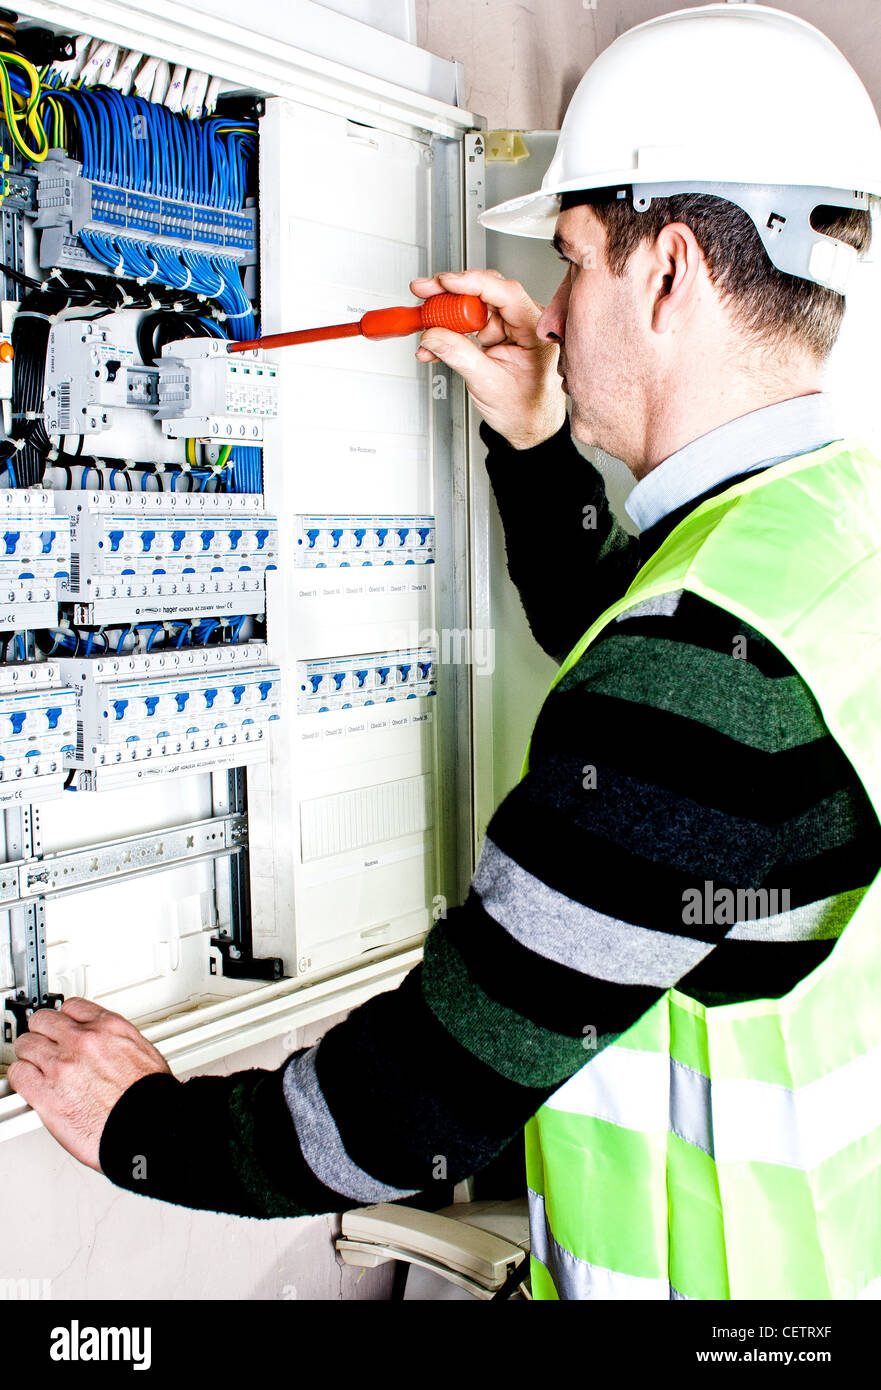 Electrician checking a fuse box - Stock Image